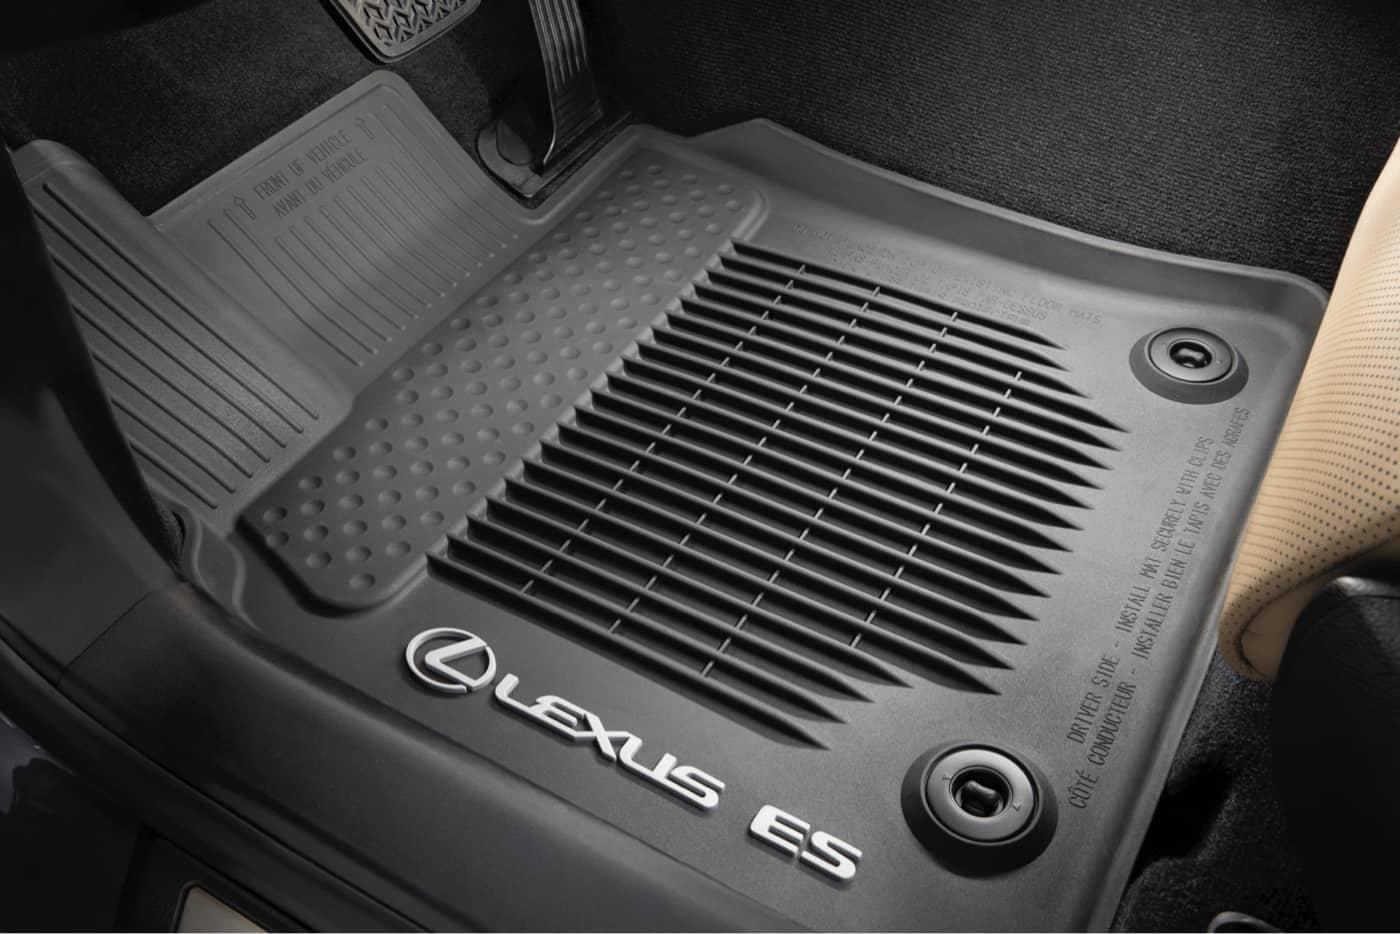 A Lexus branded floor mat specifically for the Lexus ES.